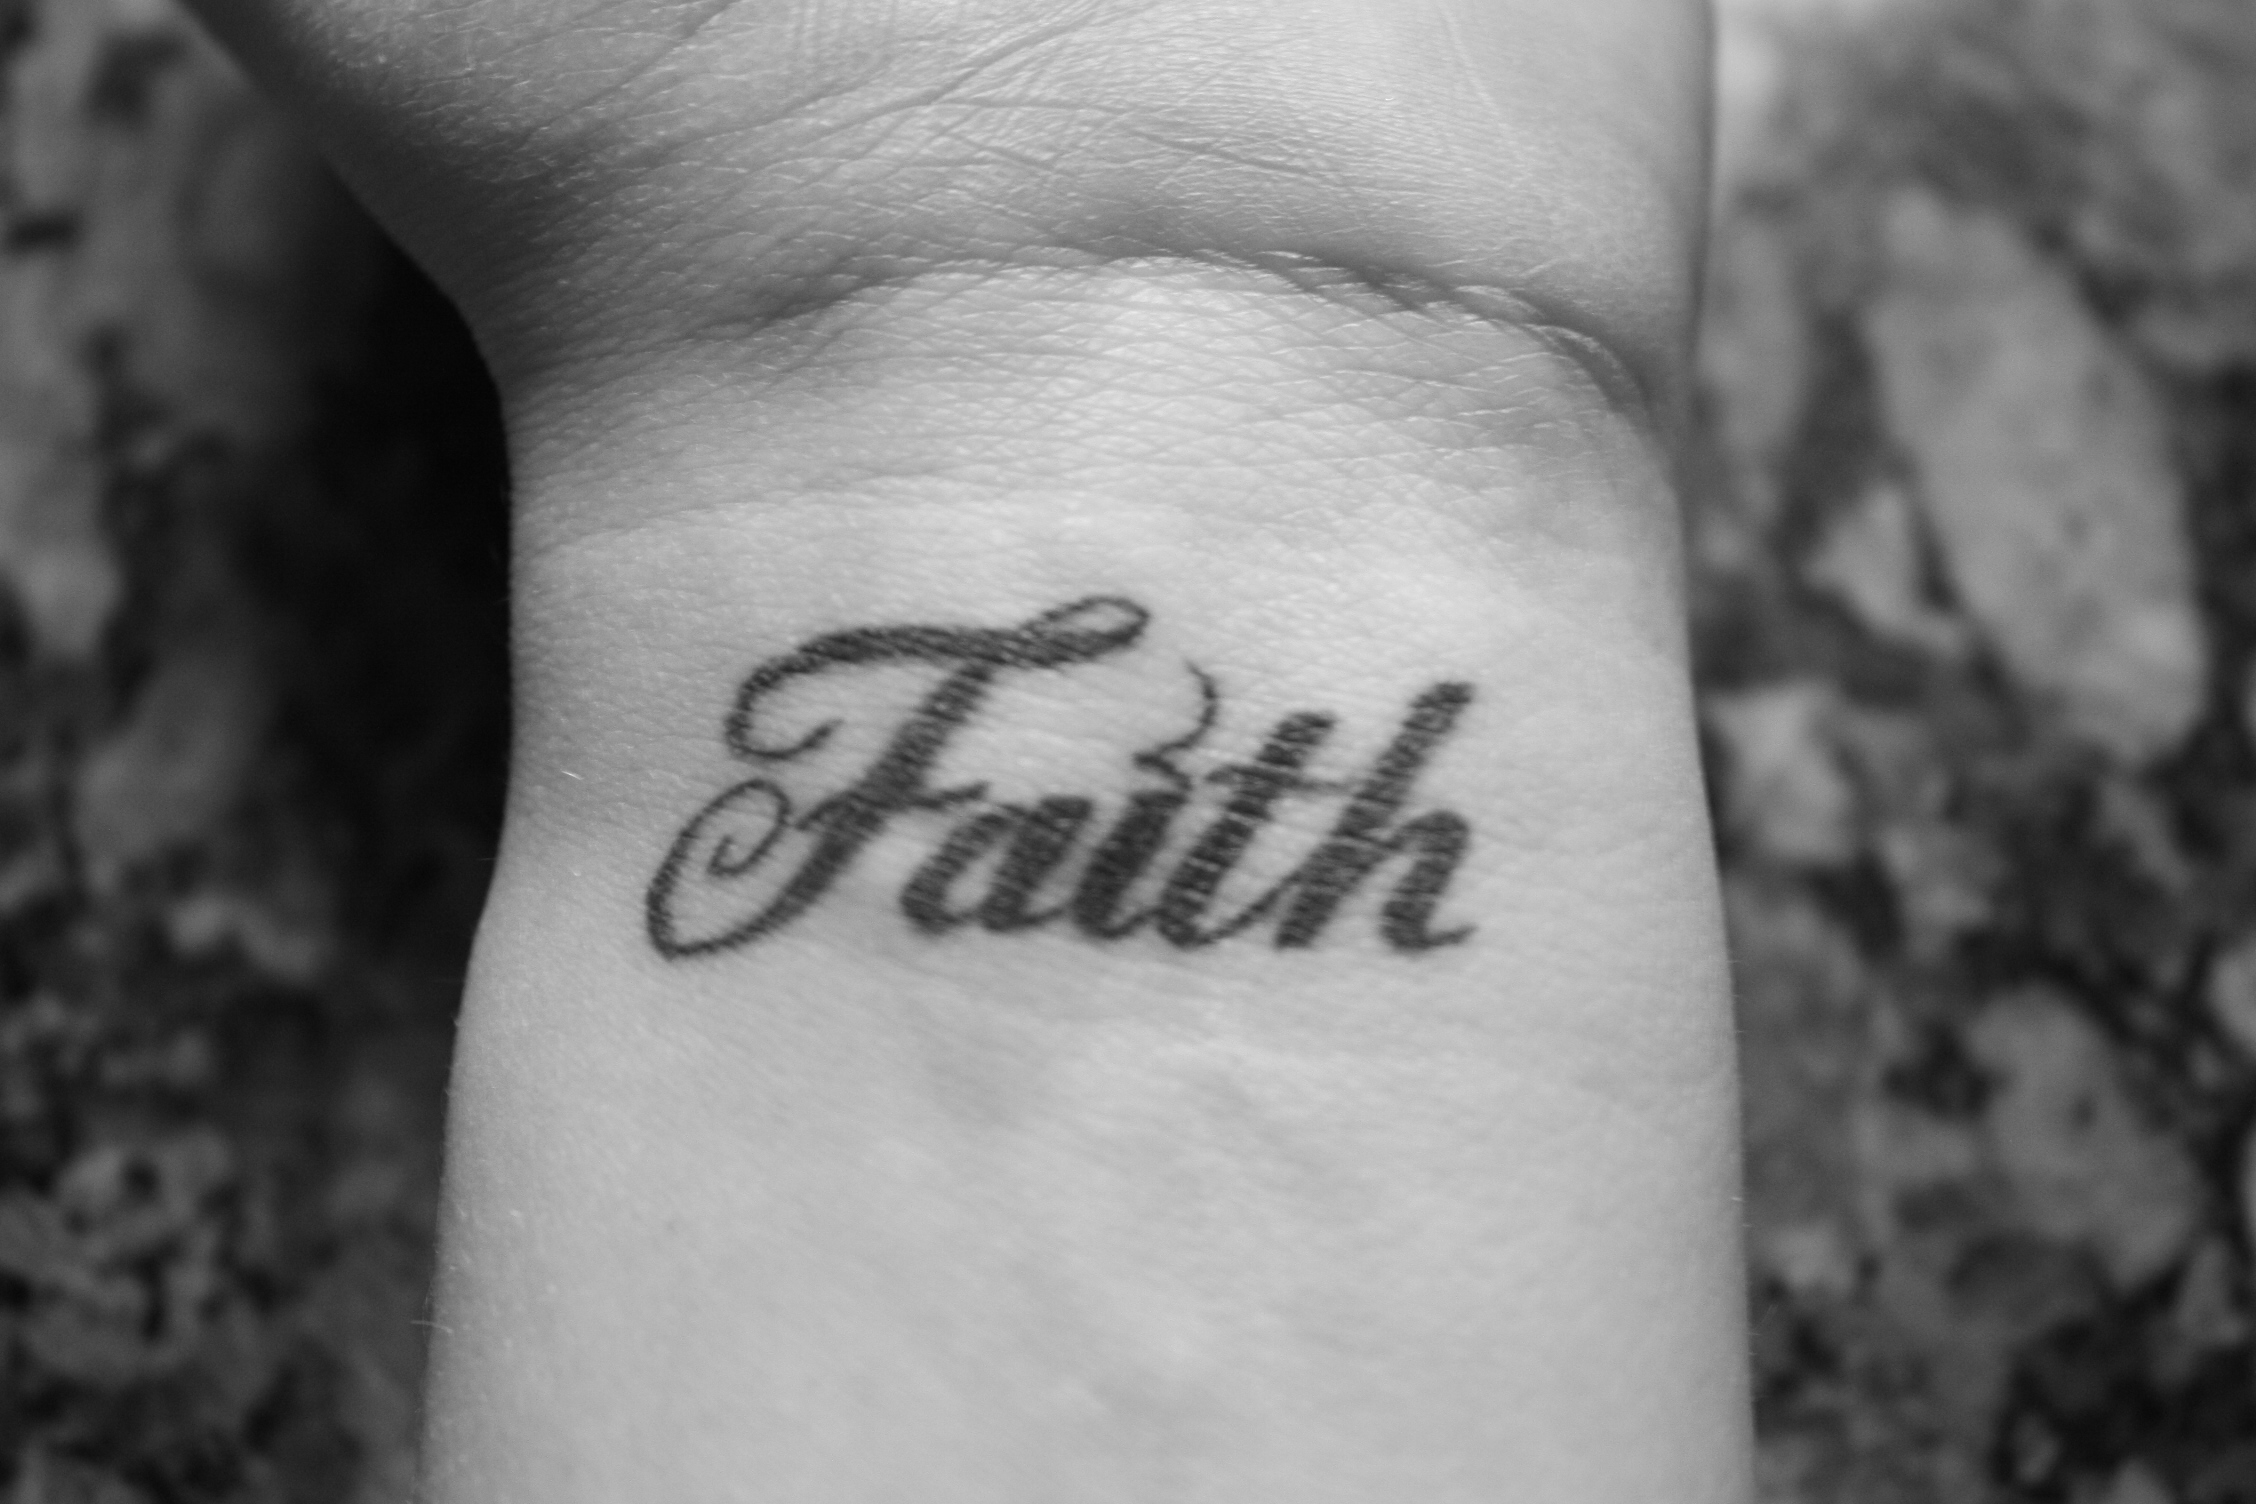 Amazing Faith Text Tattoo On Wrist